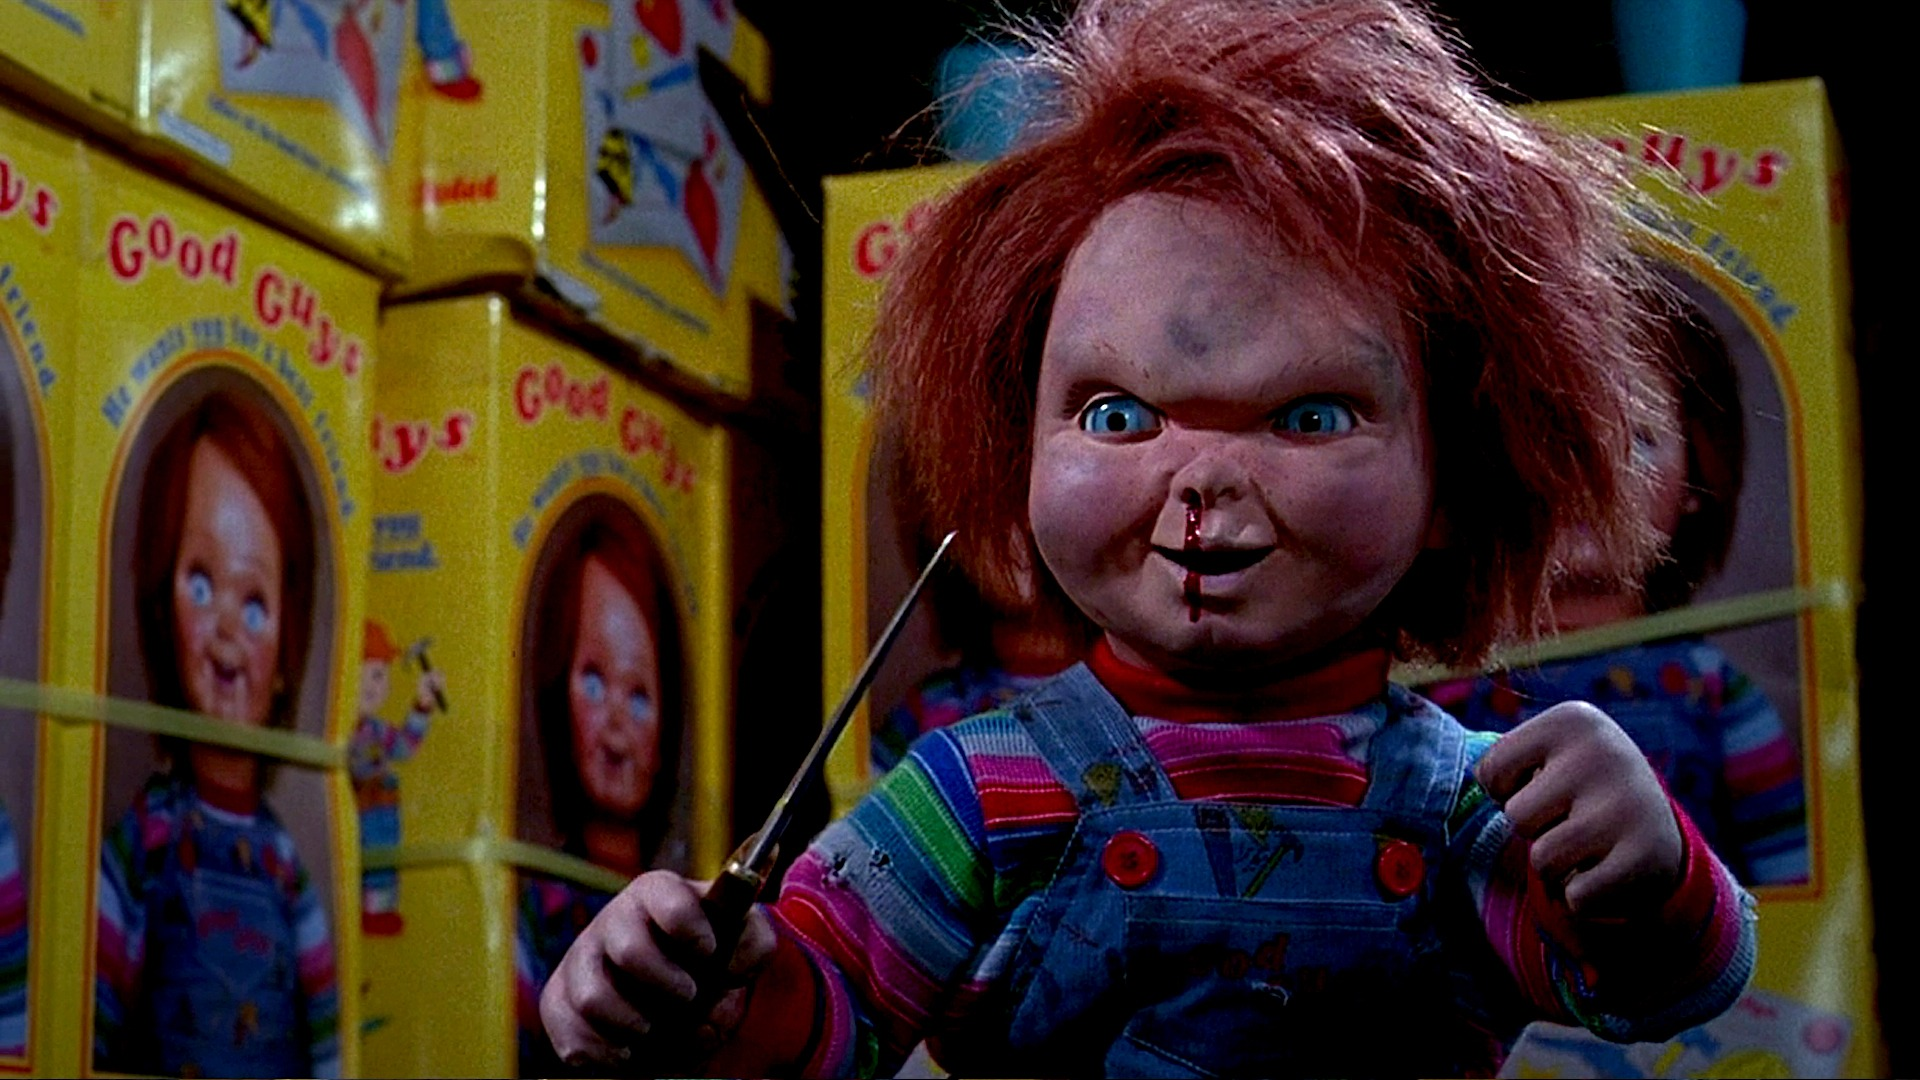 Child's Play 2 backdrop